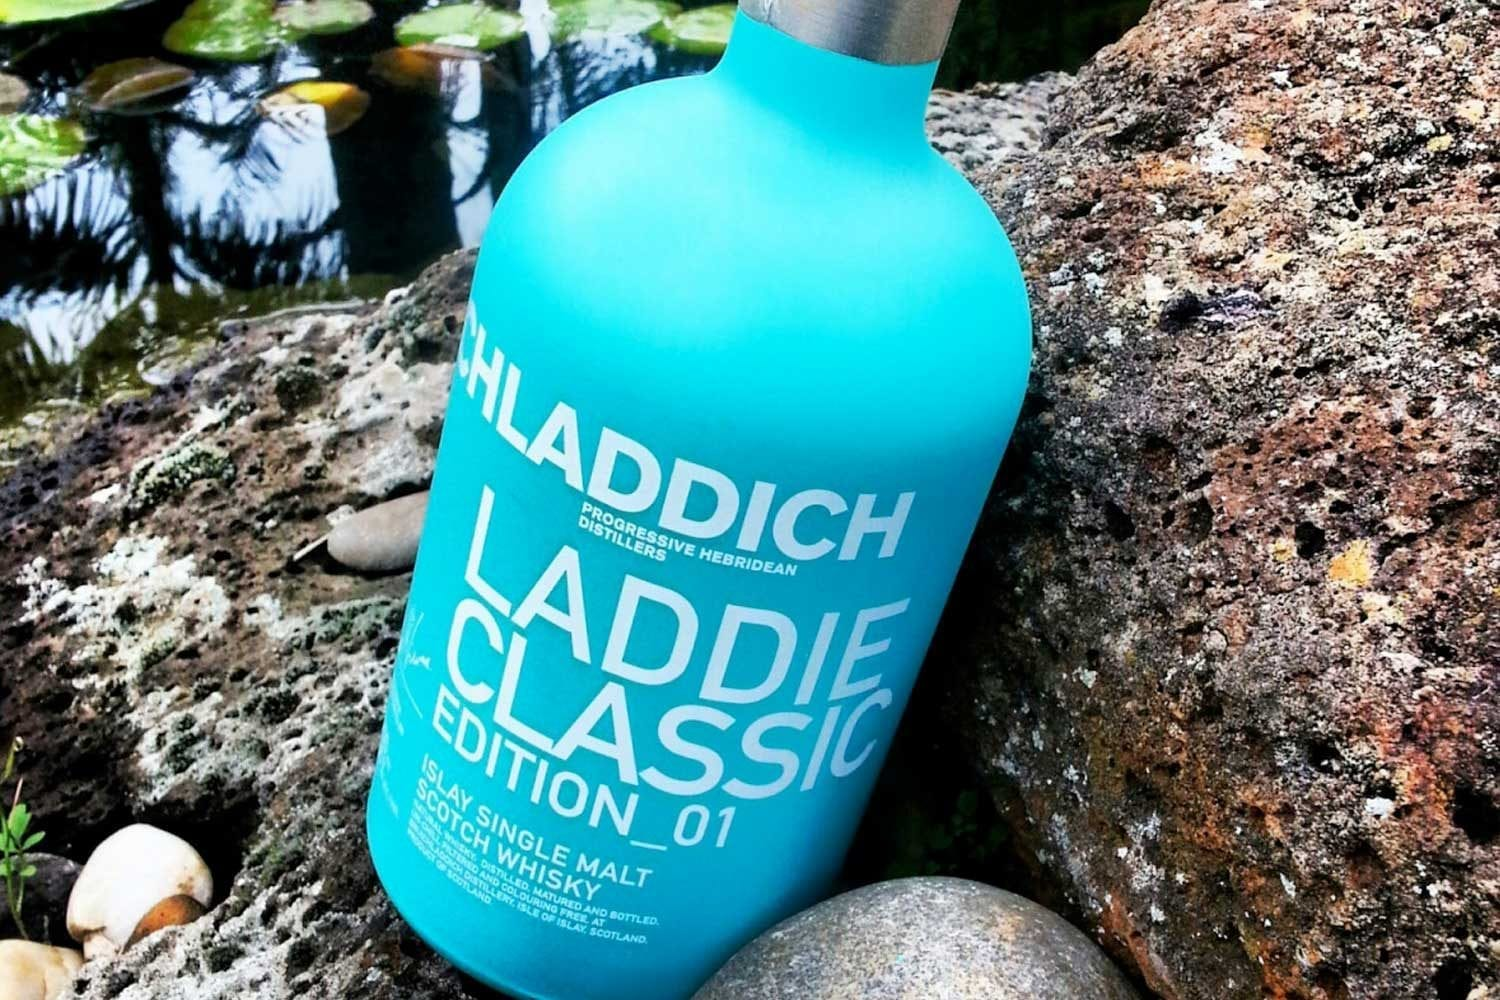 Peat? It ain't necessarily so...Laddie Classic Review